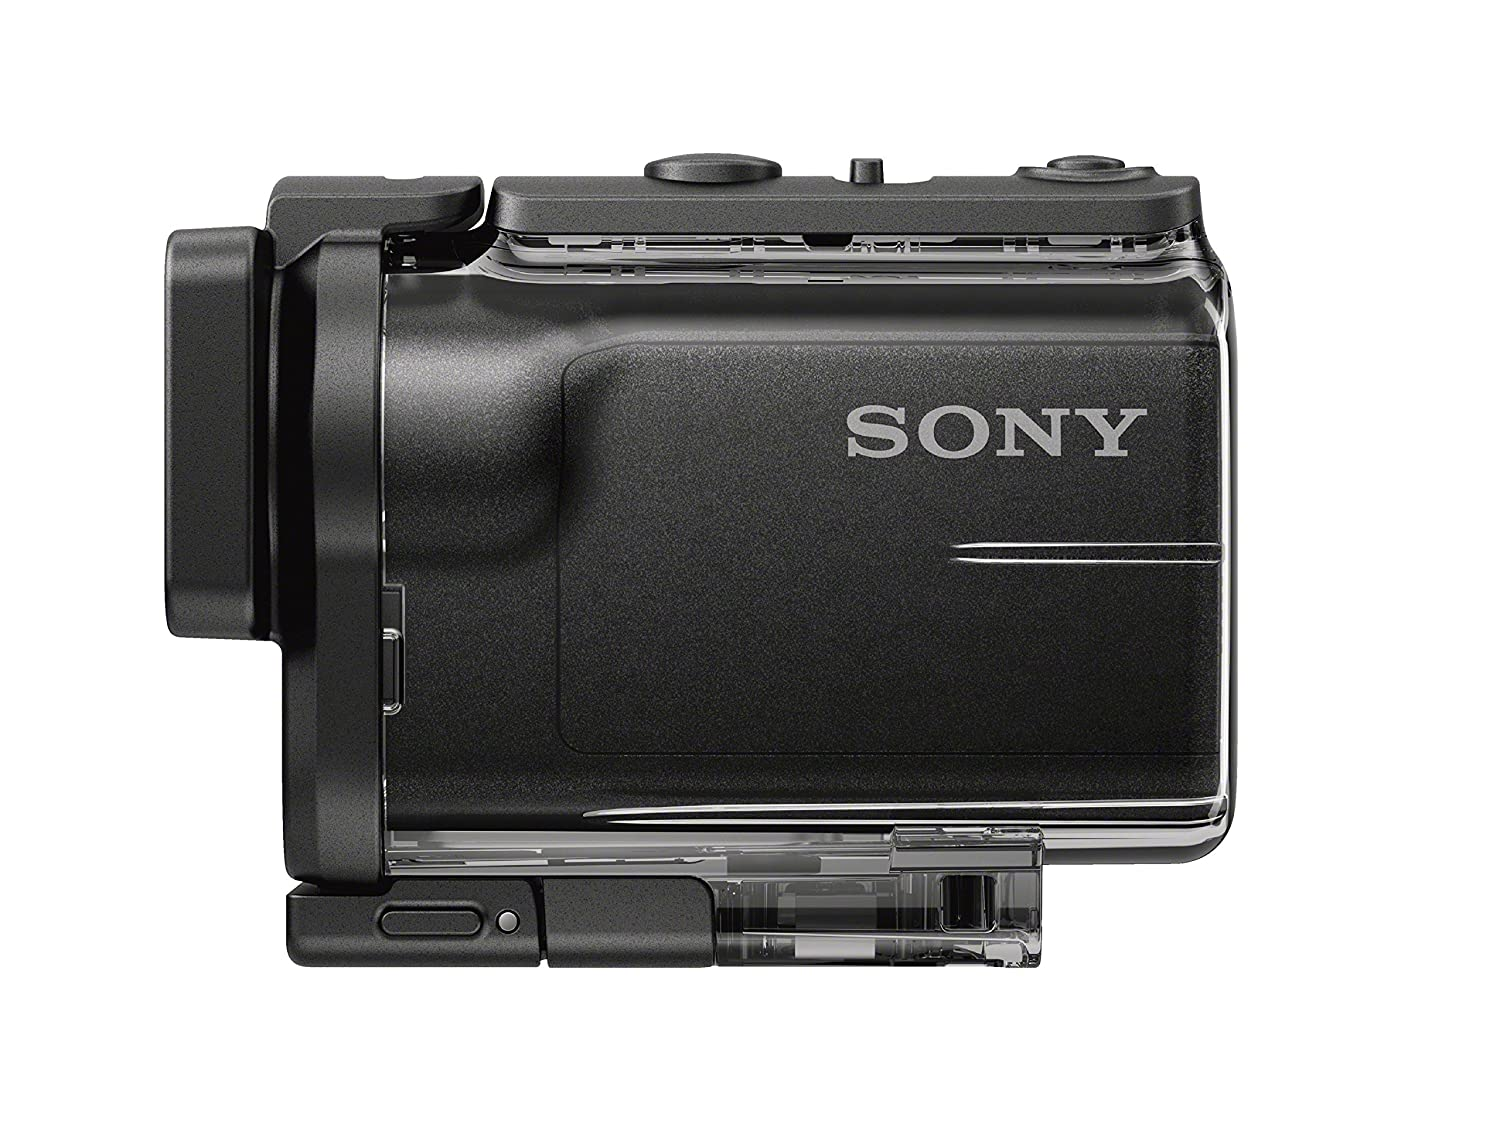 Top 5 Best Sony Action Cameras (2020 Review & Buying Guide) 2